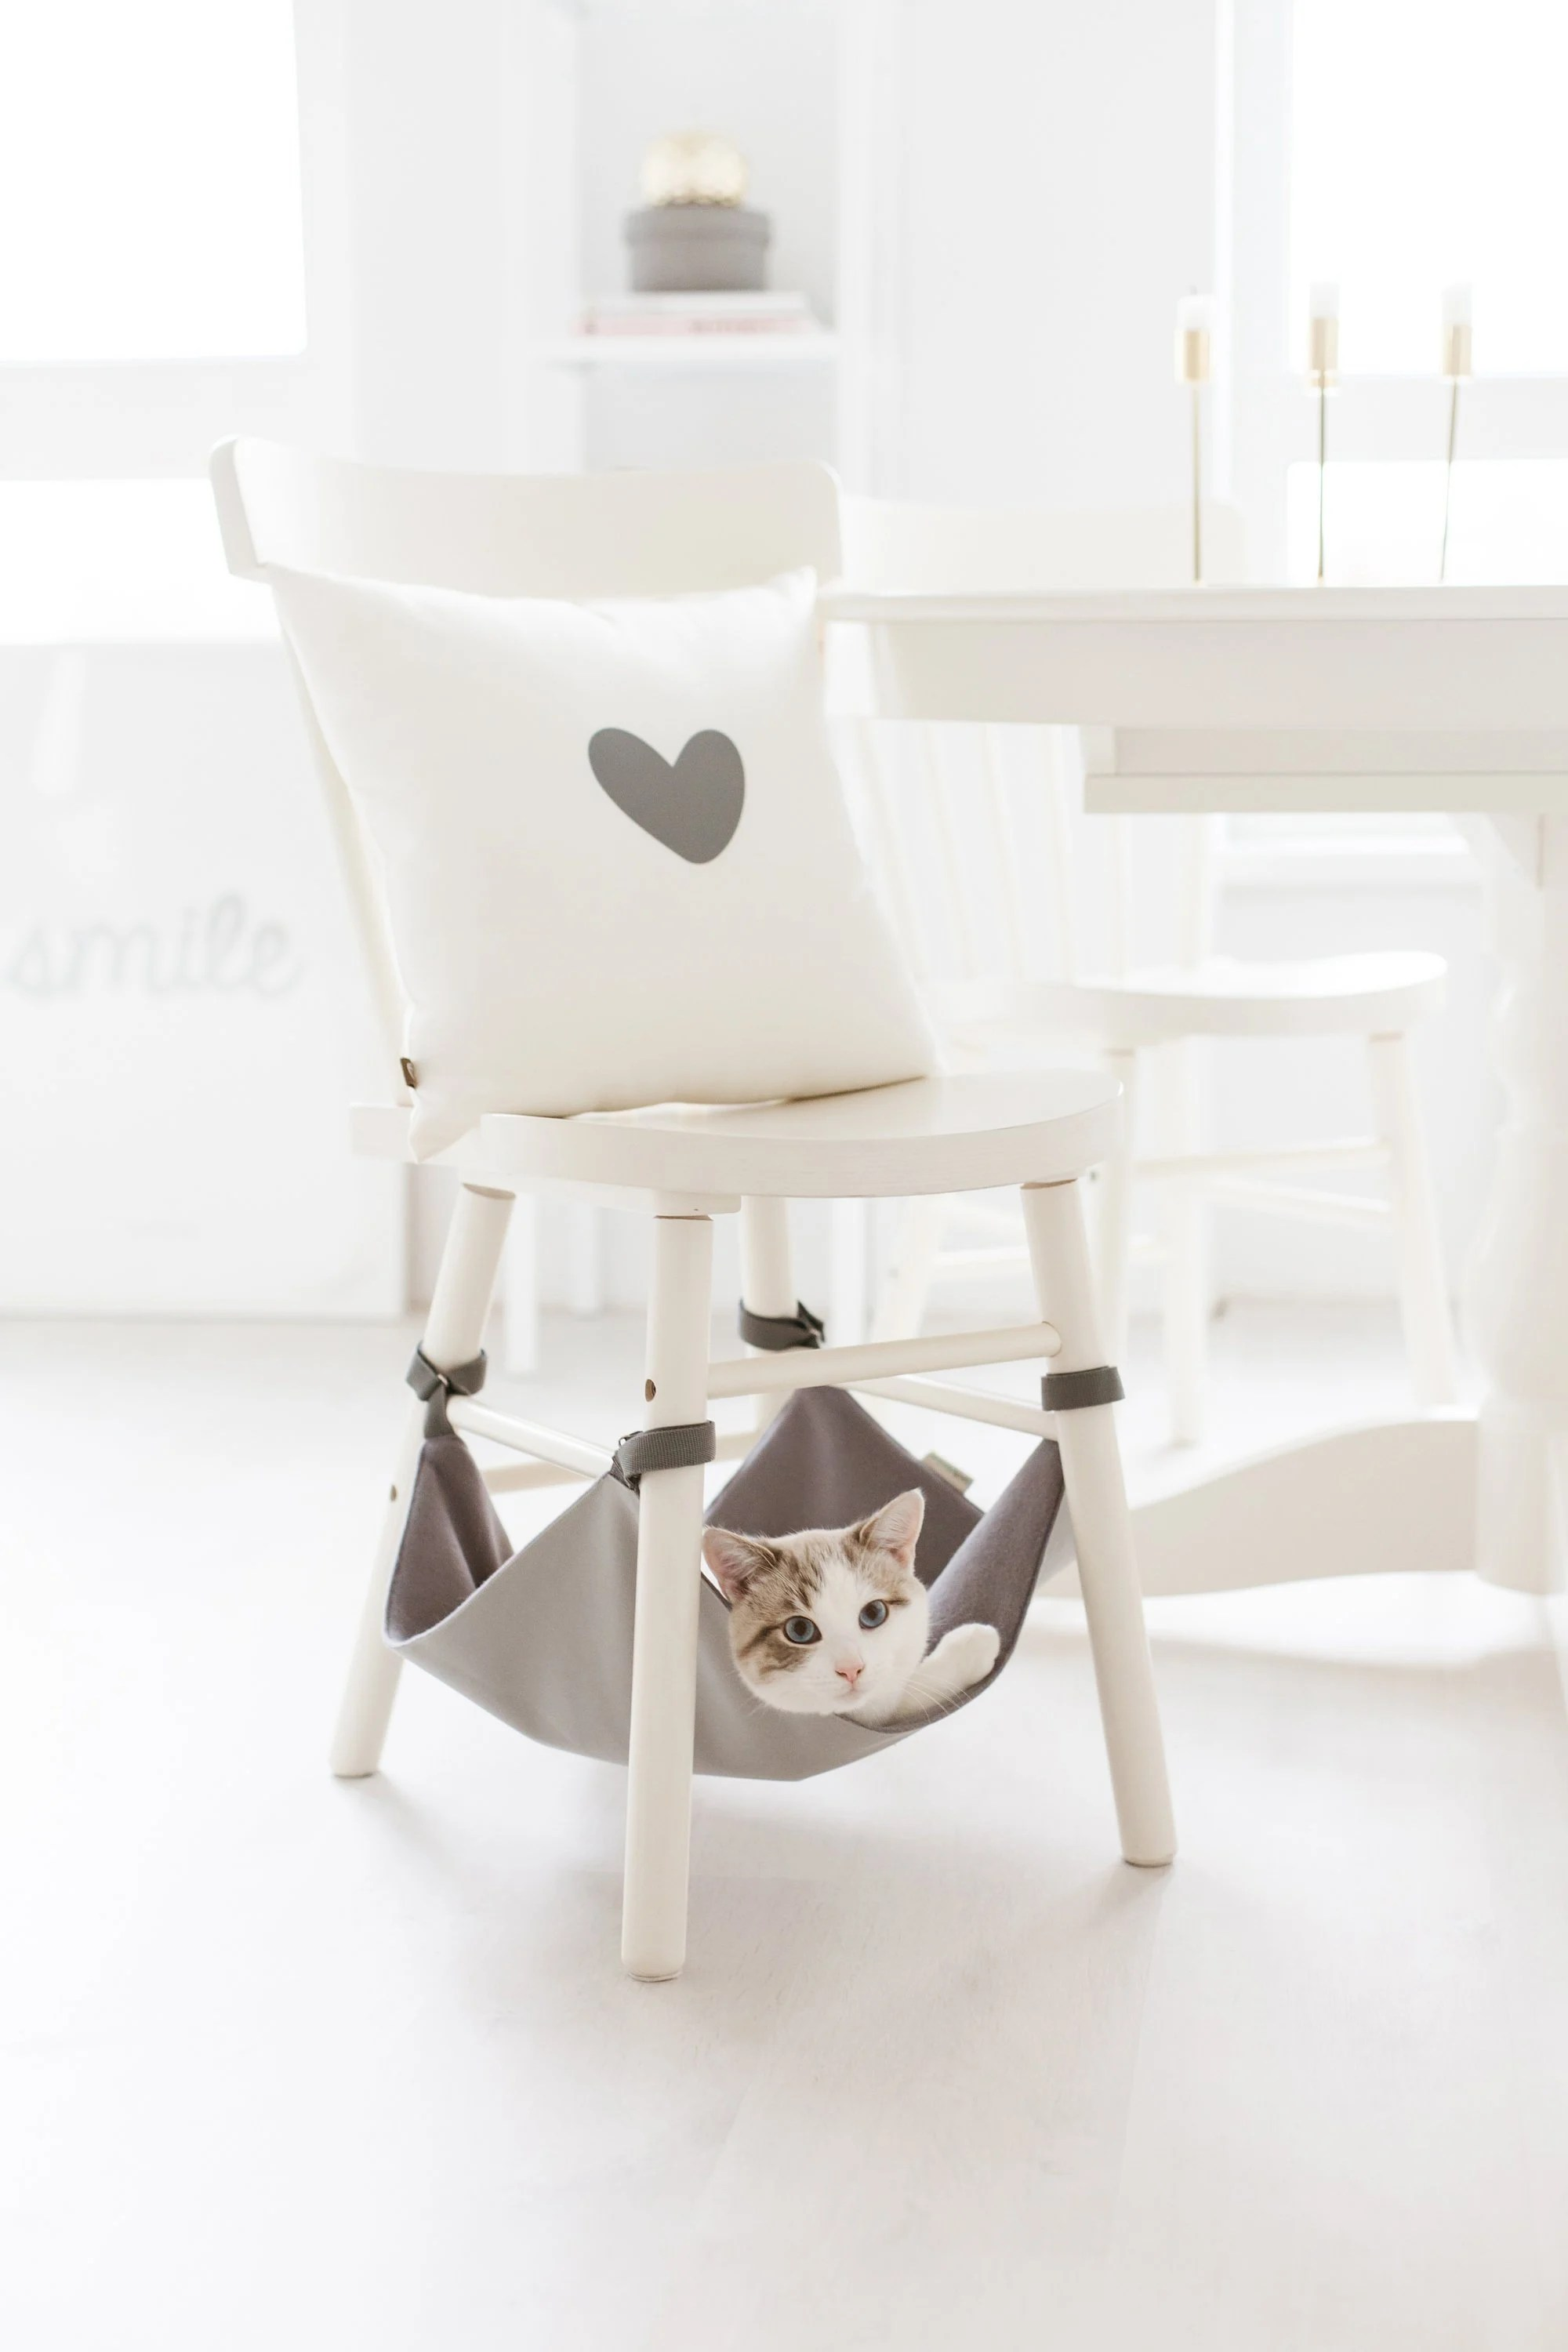 under chair cat hammock riser recliner chairs for the elderly reviews grey gift toy etsy image 0